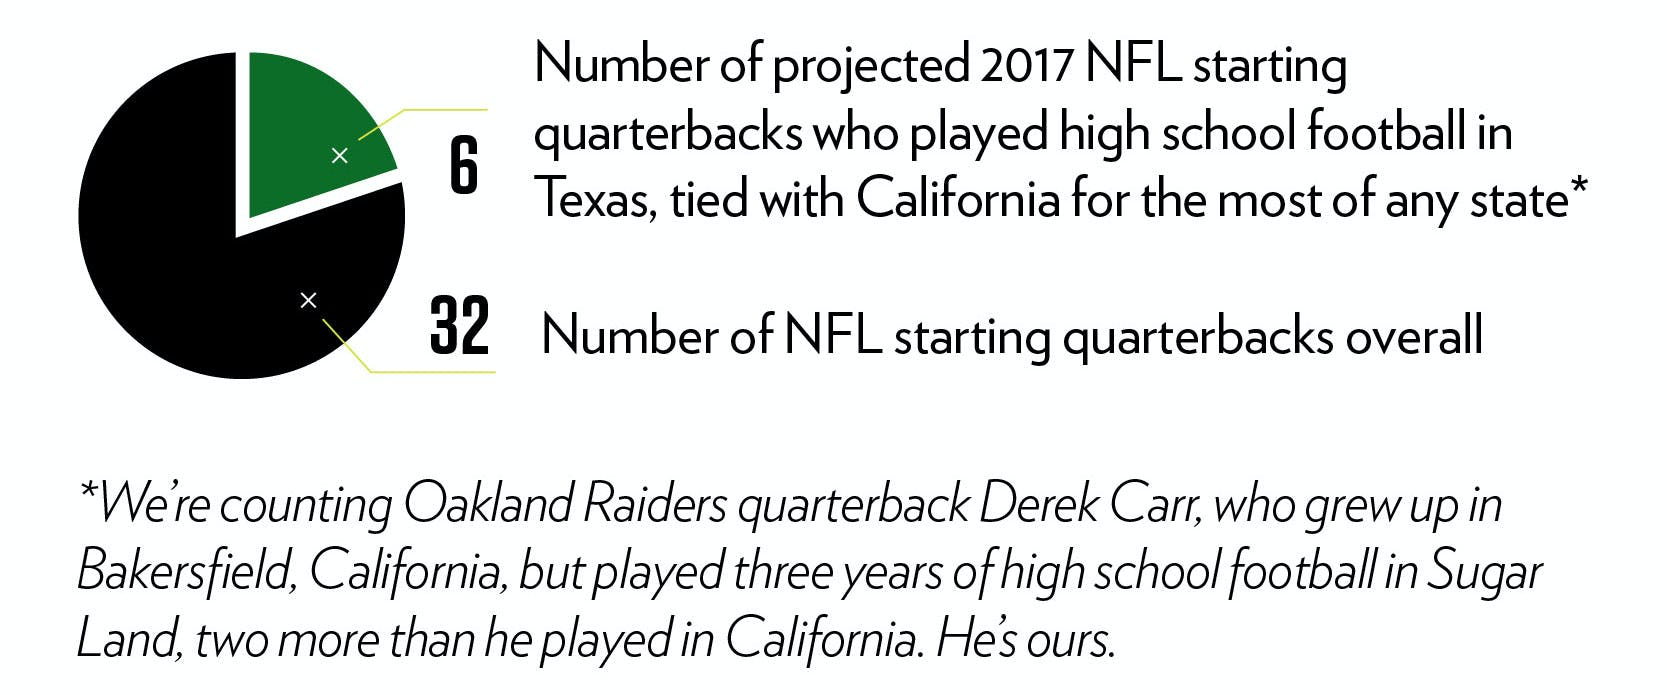 6: Number of projected 2017 NFL starting quarterbacks who played high school football in Texas, tied with California for the most of any state. 32: Number of NFL starting quarterbacks overall.